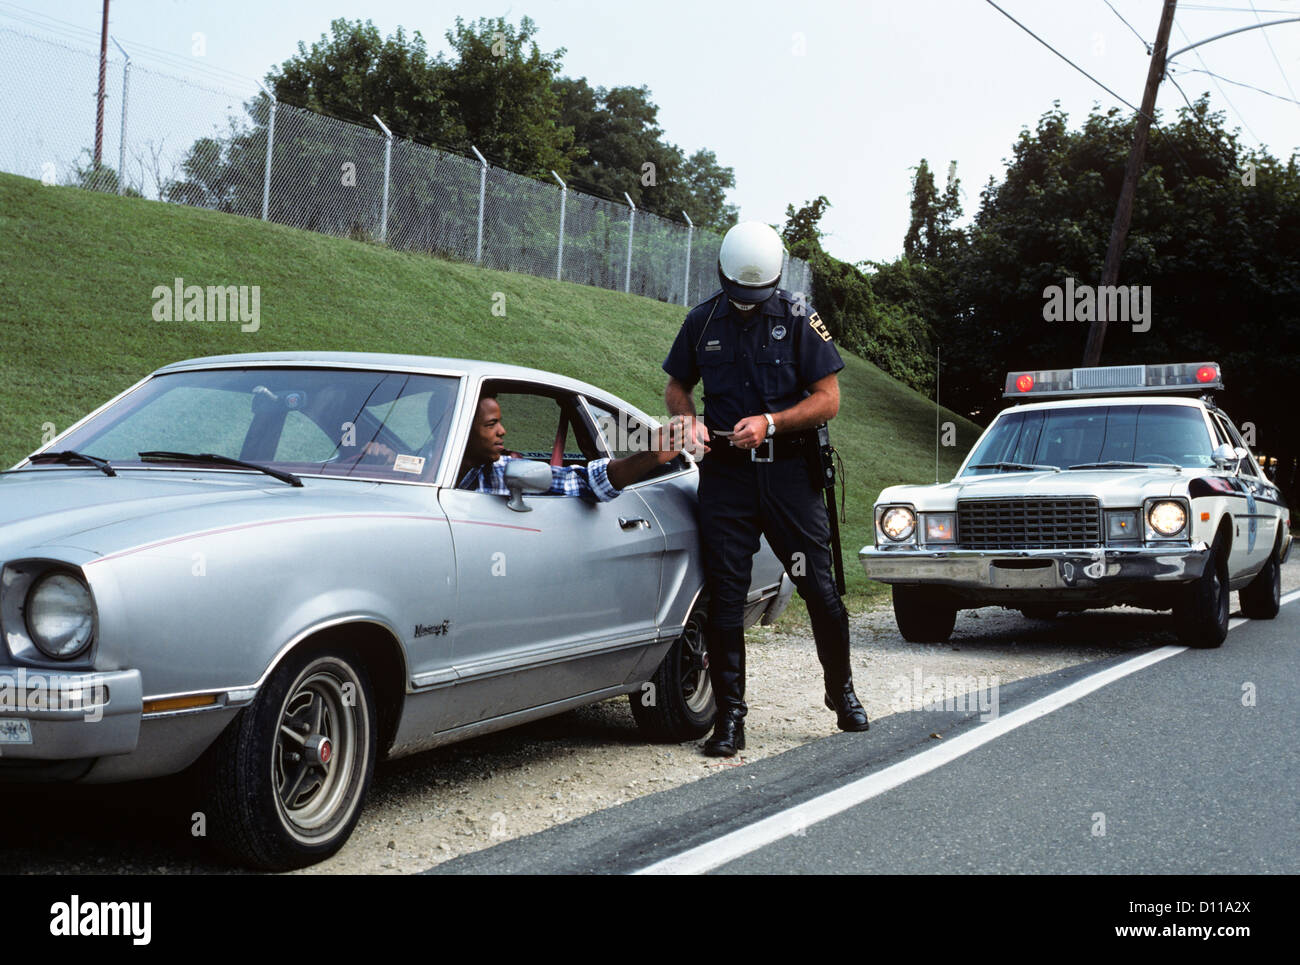 African Police Car Cars Vehicle Stock Photos & African Police Car ...